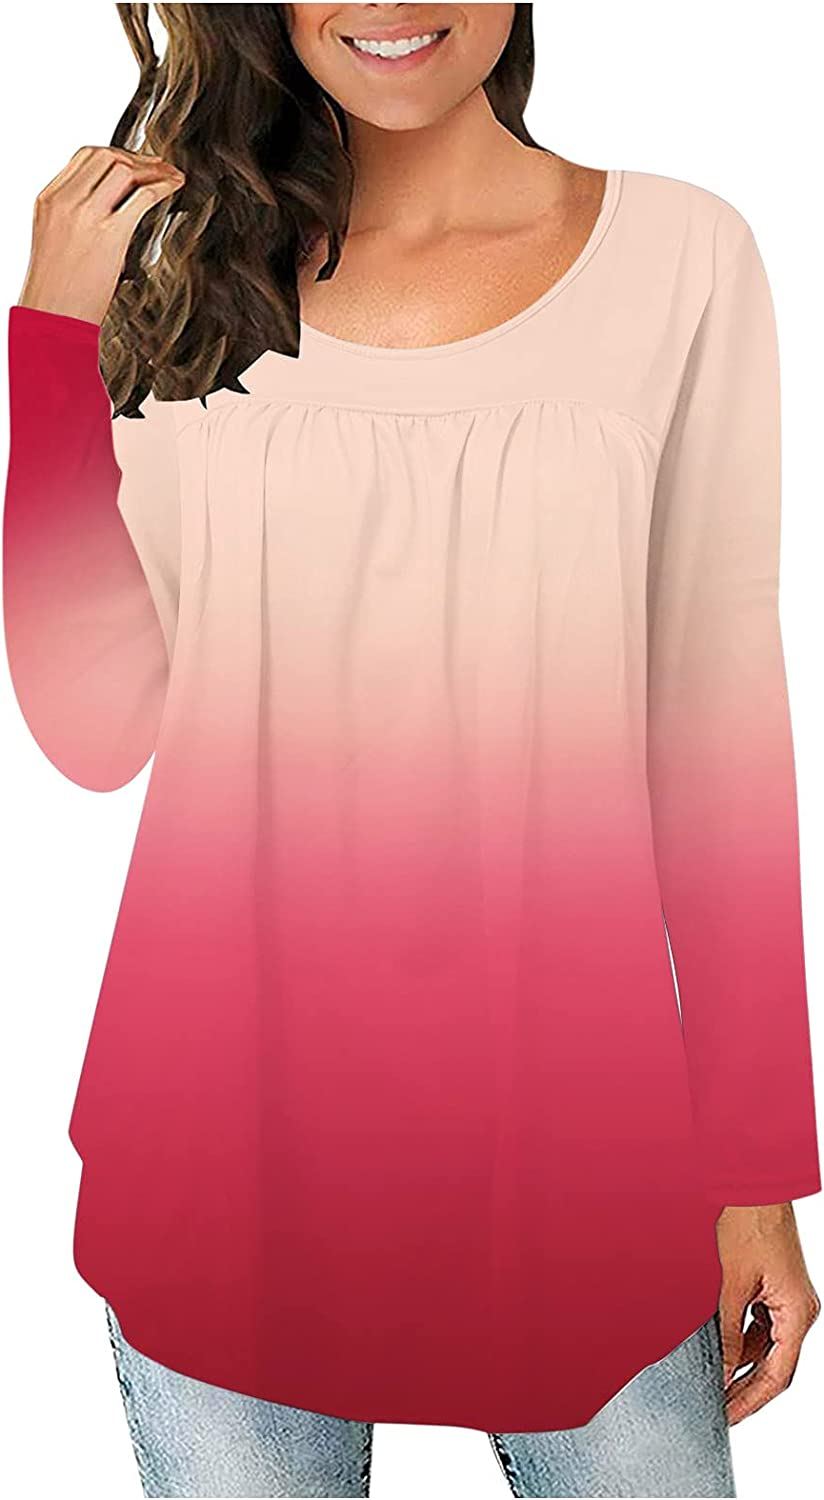 felwors Long Sleeve Shirts for Women, Womens Plus Size Long Sleeve Pullover Tops Button Up Casual Crewneck Tunics